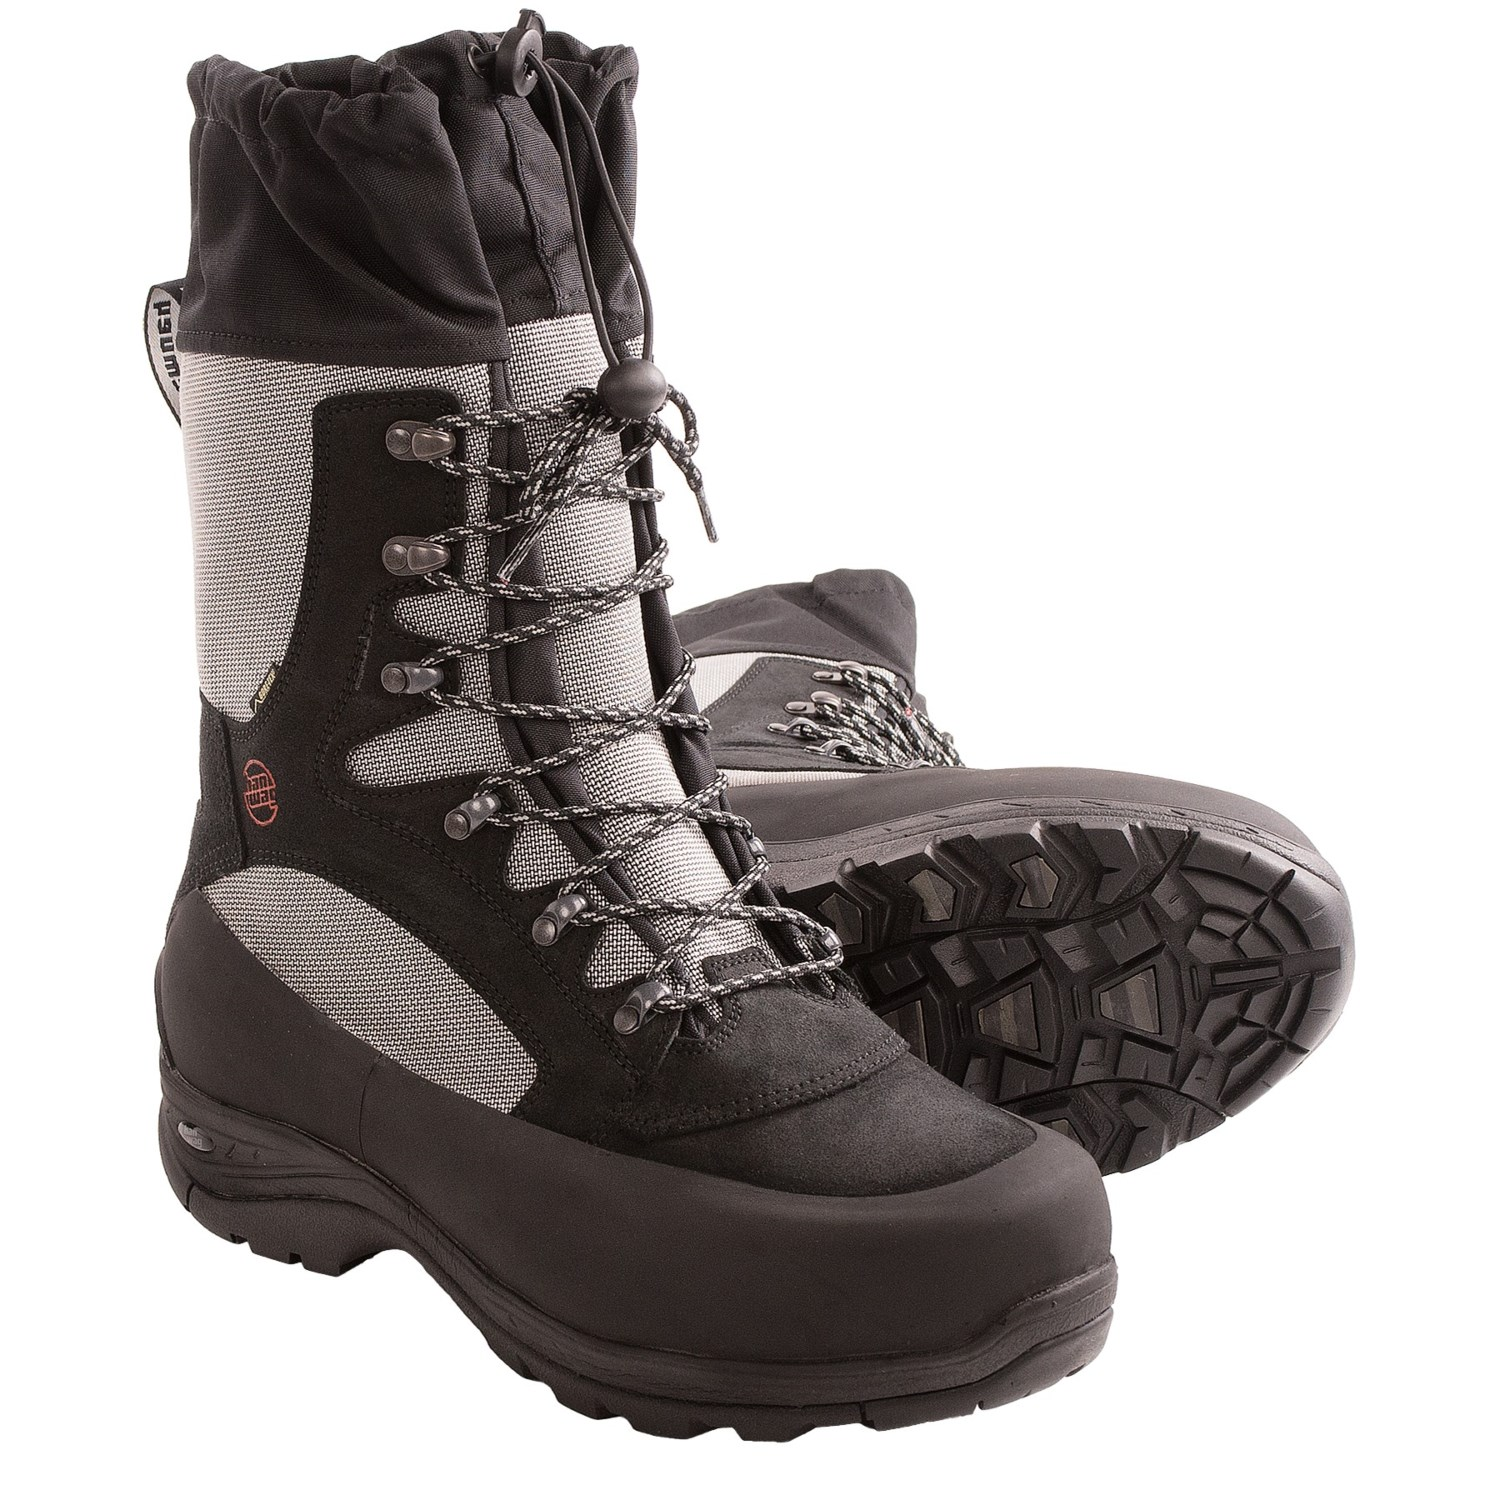 Mens Snow Boots Black | Santa Barbara Institute for Consciousness ...